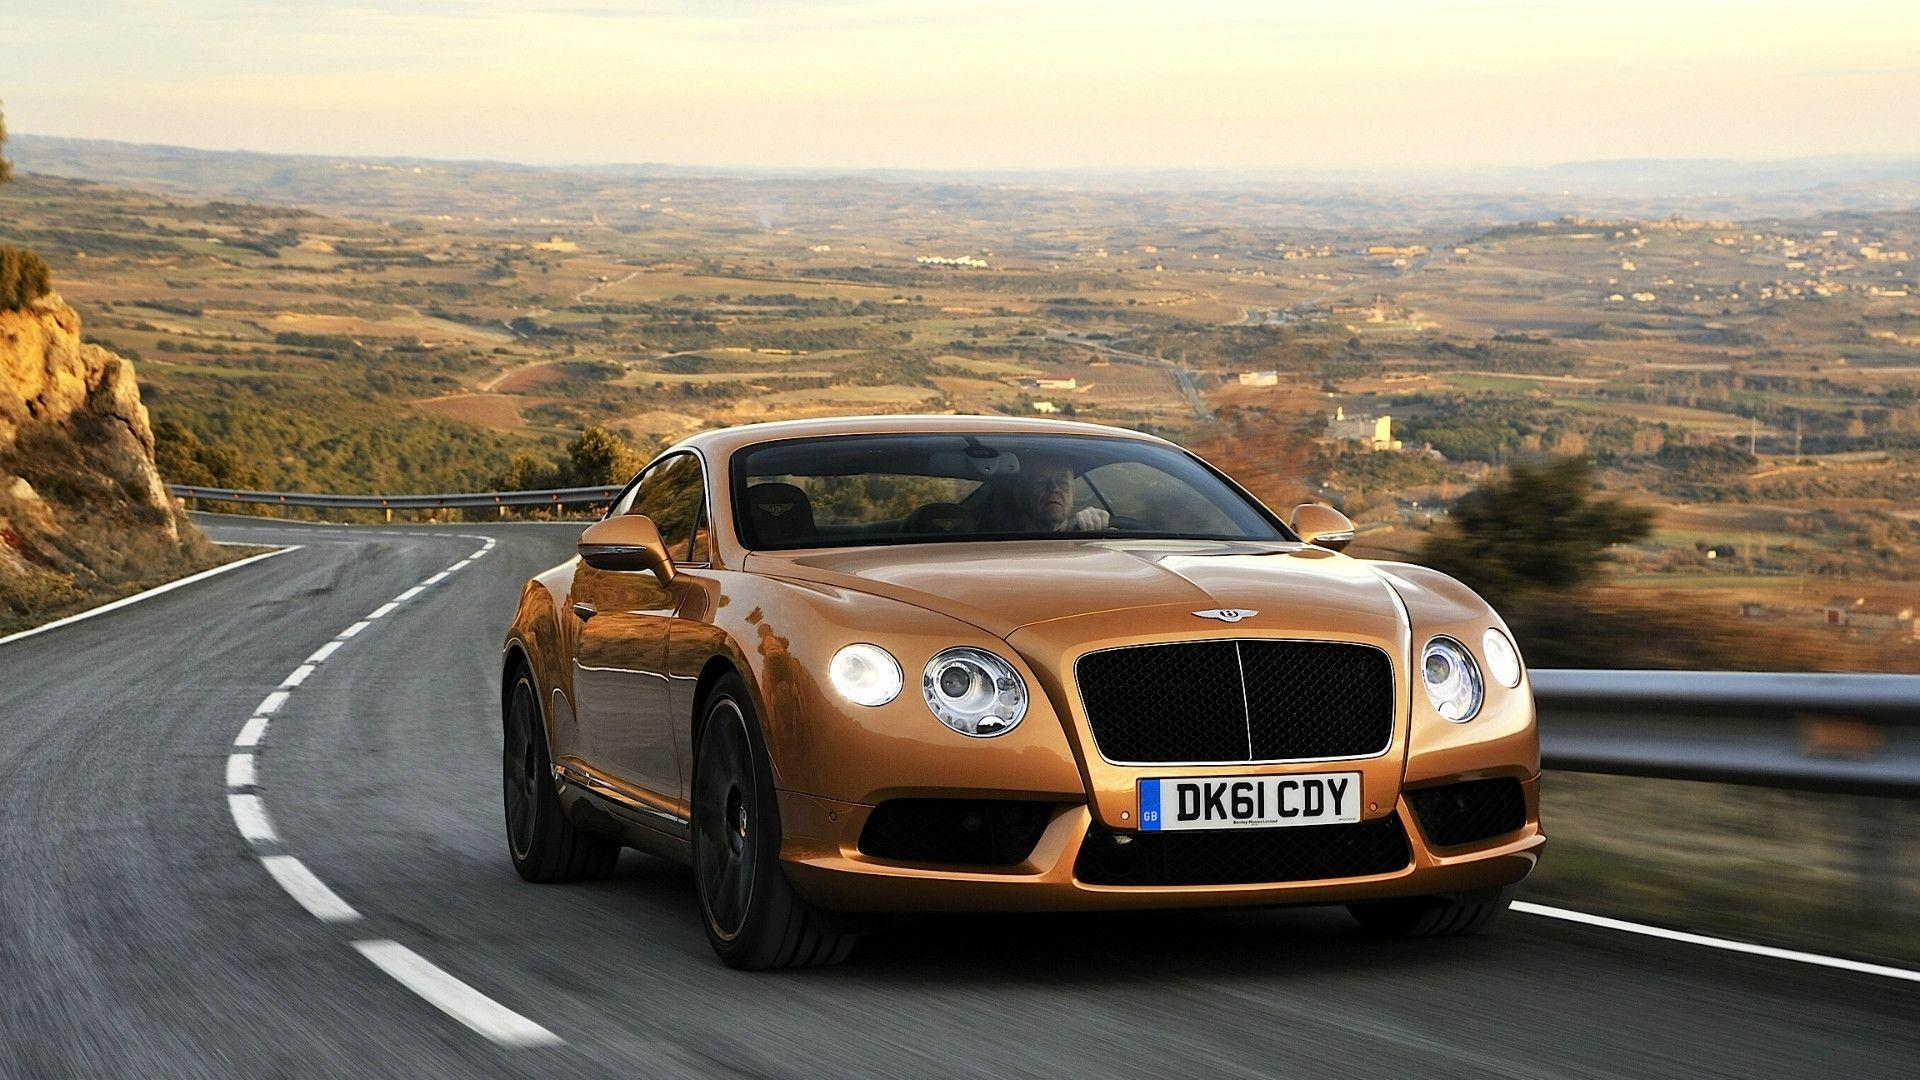 Bentley Car Wallpaper >> Bentley Wallpapers Wallpaper Cave